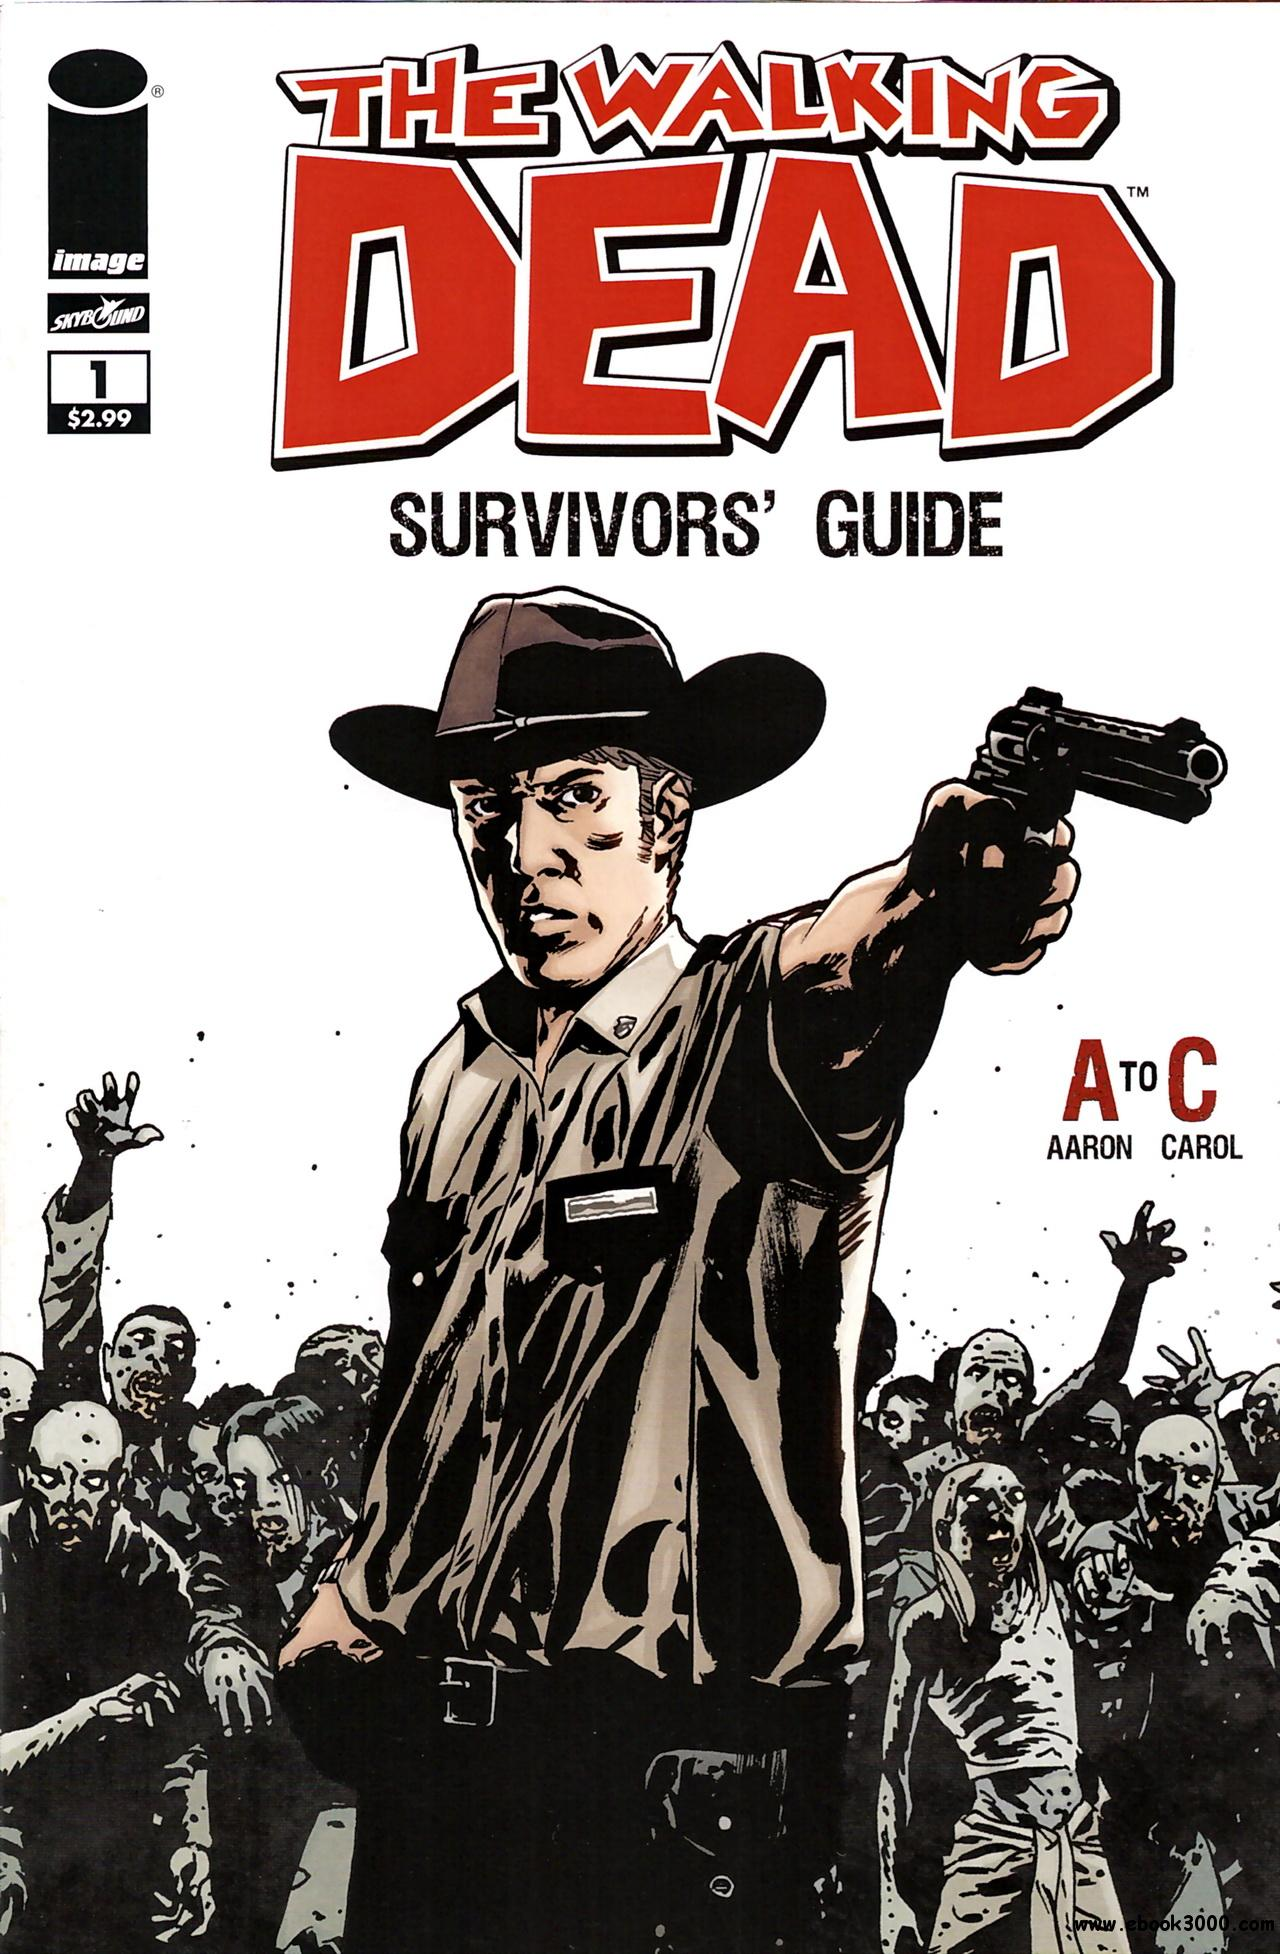 The Walking Dead Survivor's Guide #1 (2011) free download